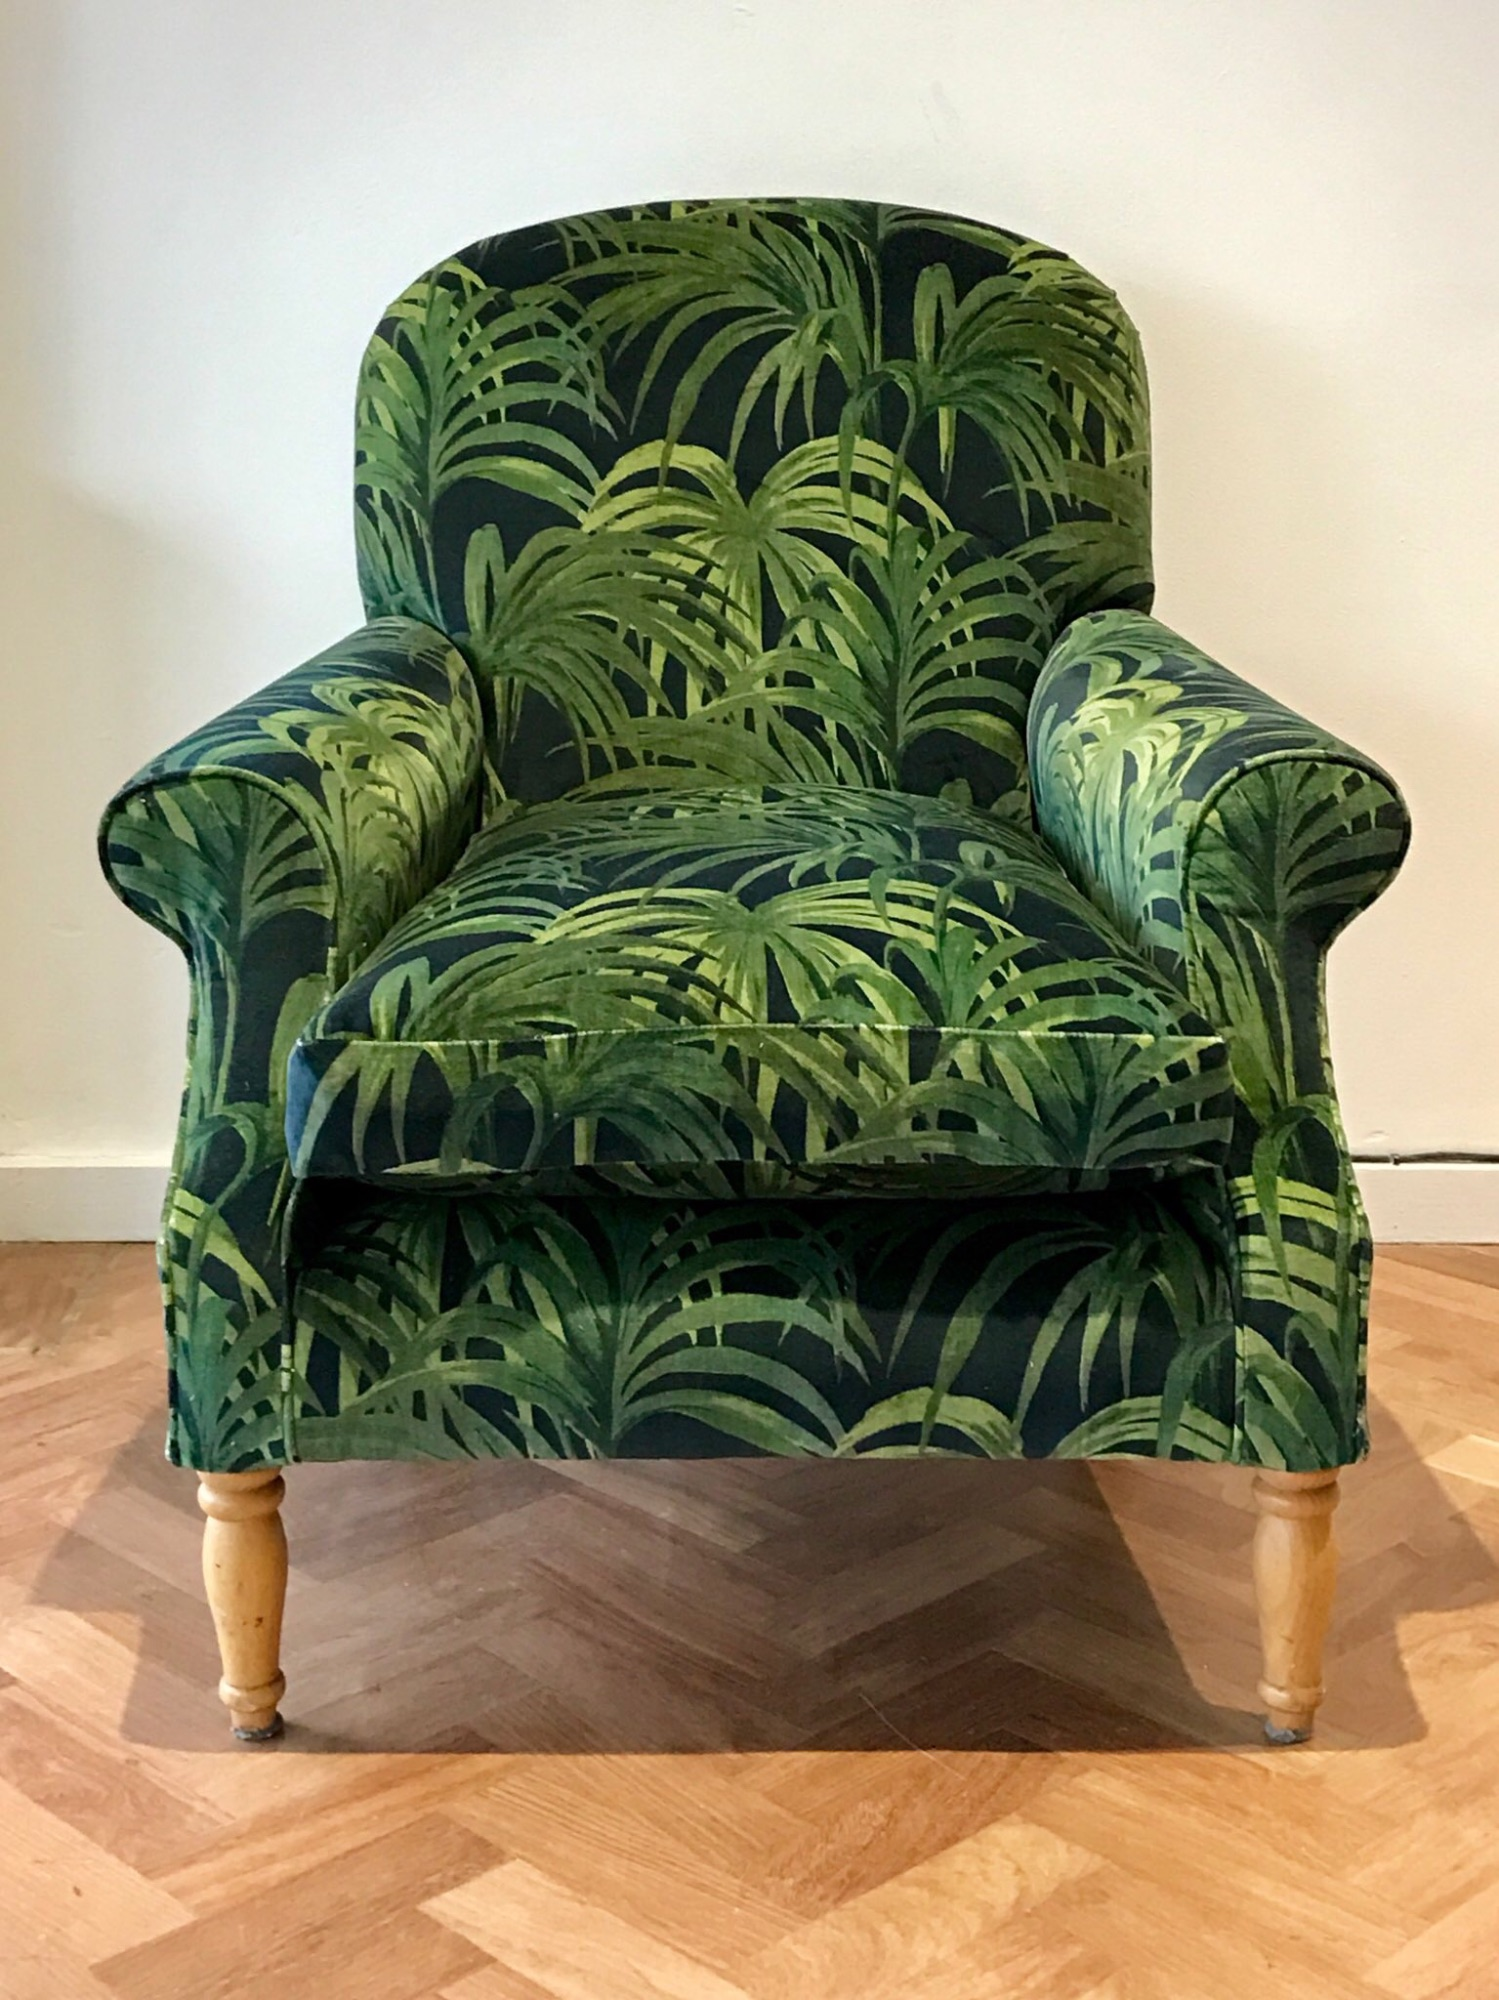 Modern arm chair in House of Hackney  fabric by Spring Upholstery Brighton